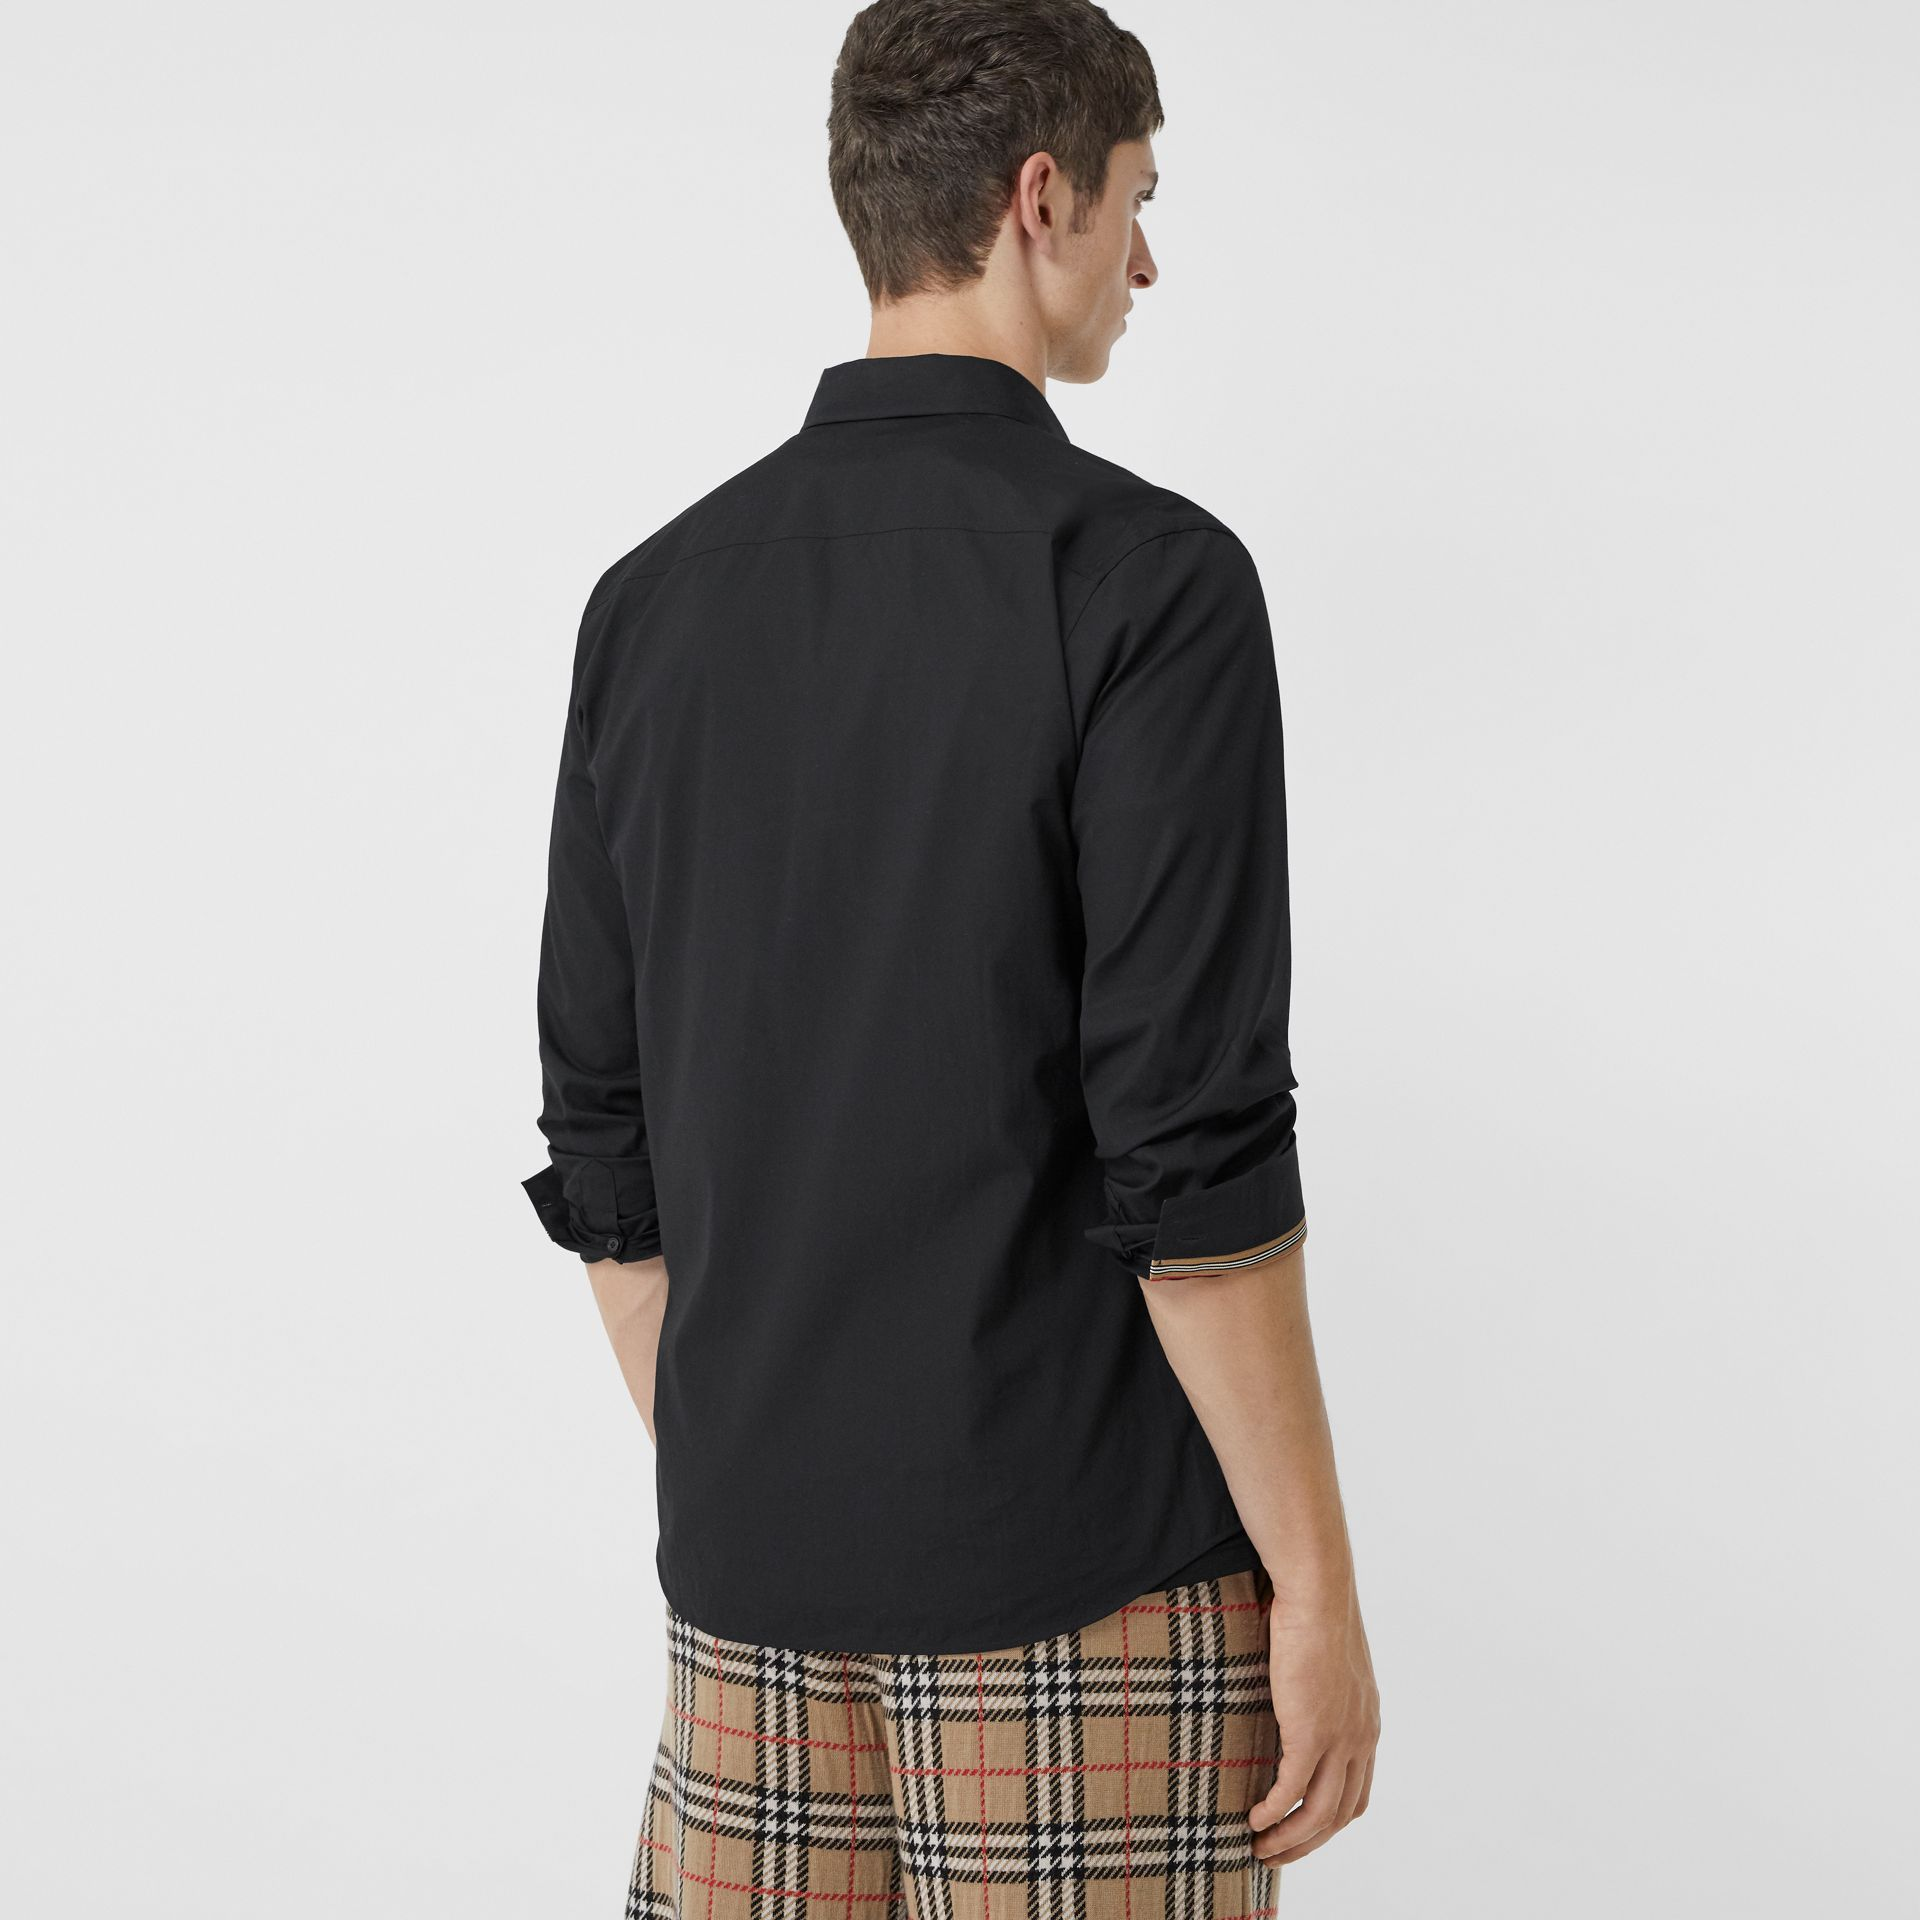 Monogram Motif Stretch Cotton Poplin Shirt in Black - Men | Burberry - gallery image 2